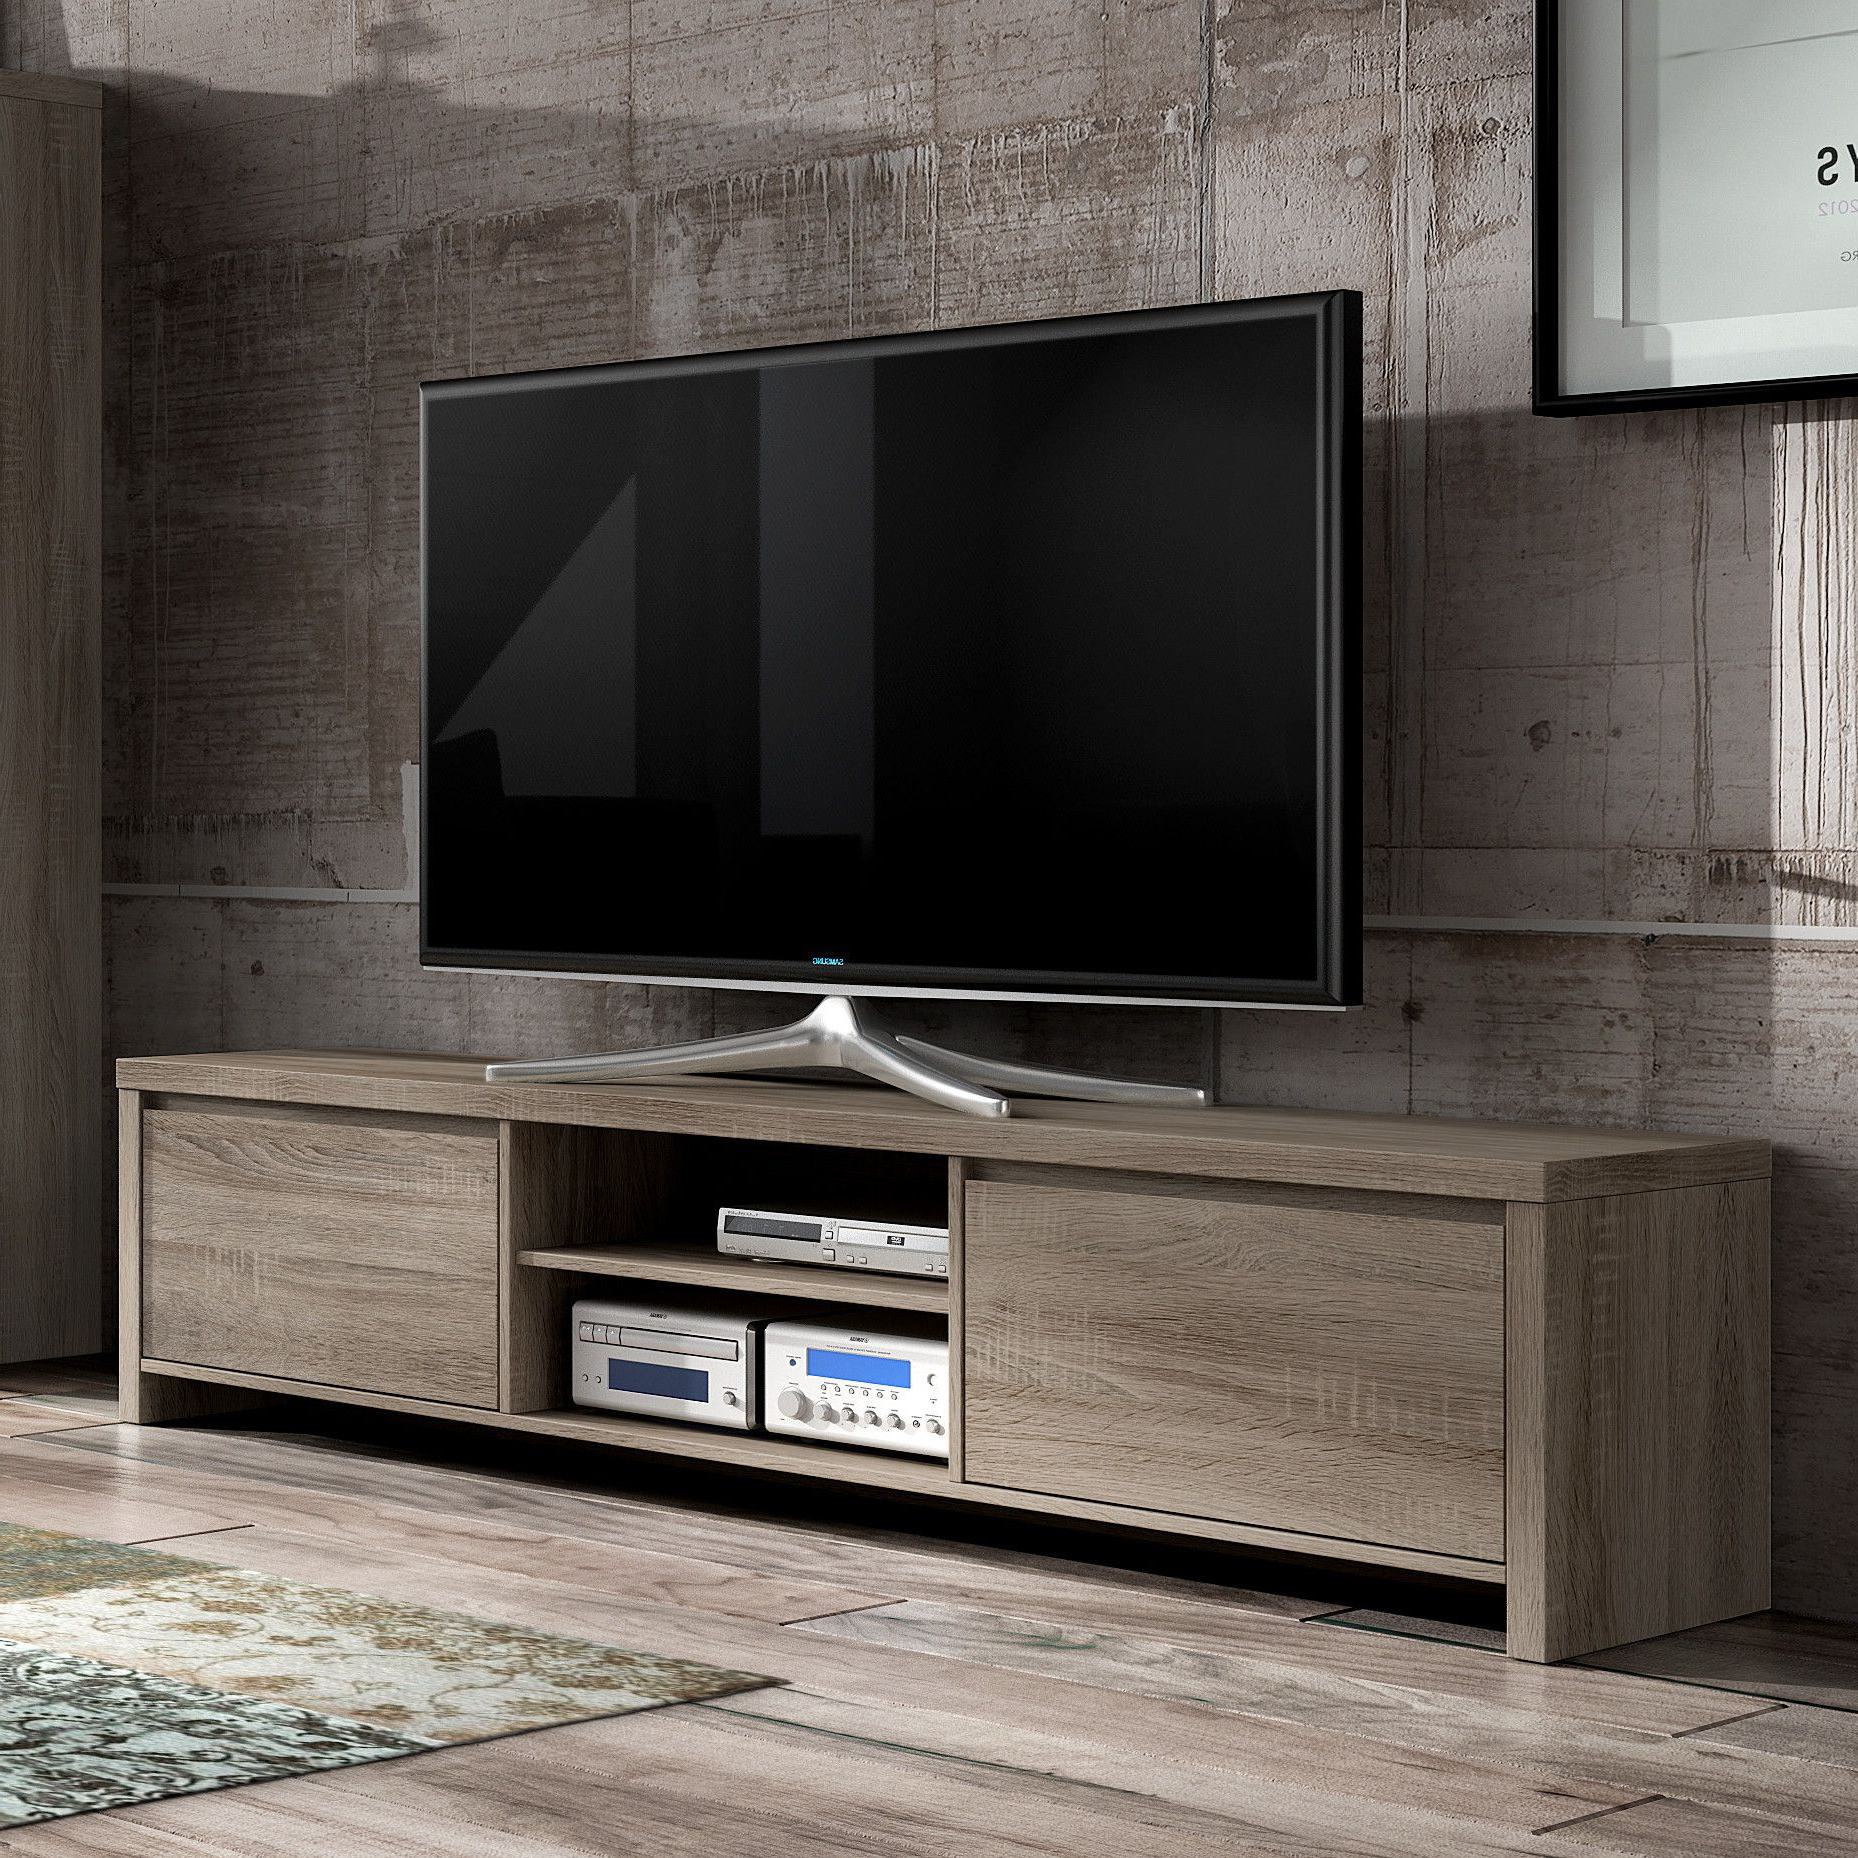 You'll Love The Sven Tv Stand At Wayfair.co.uk – Great Deals On All Within Well Known Big Tv Stands Furniture (Gallery 7 of 20)